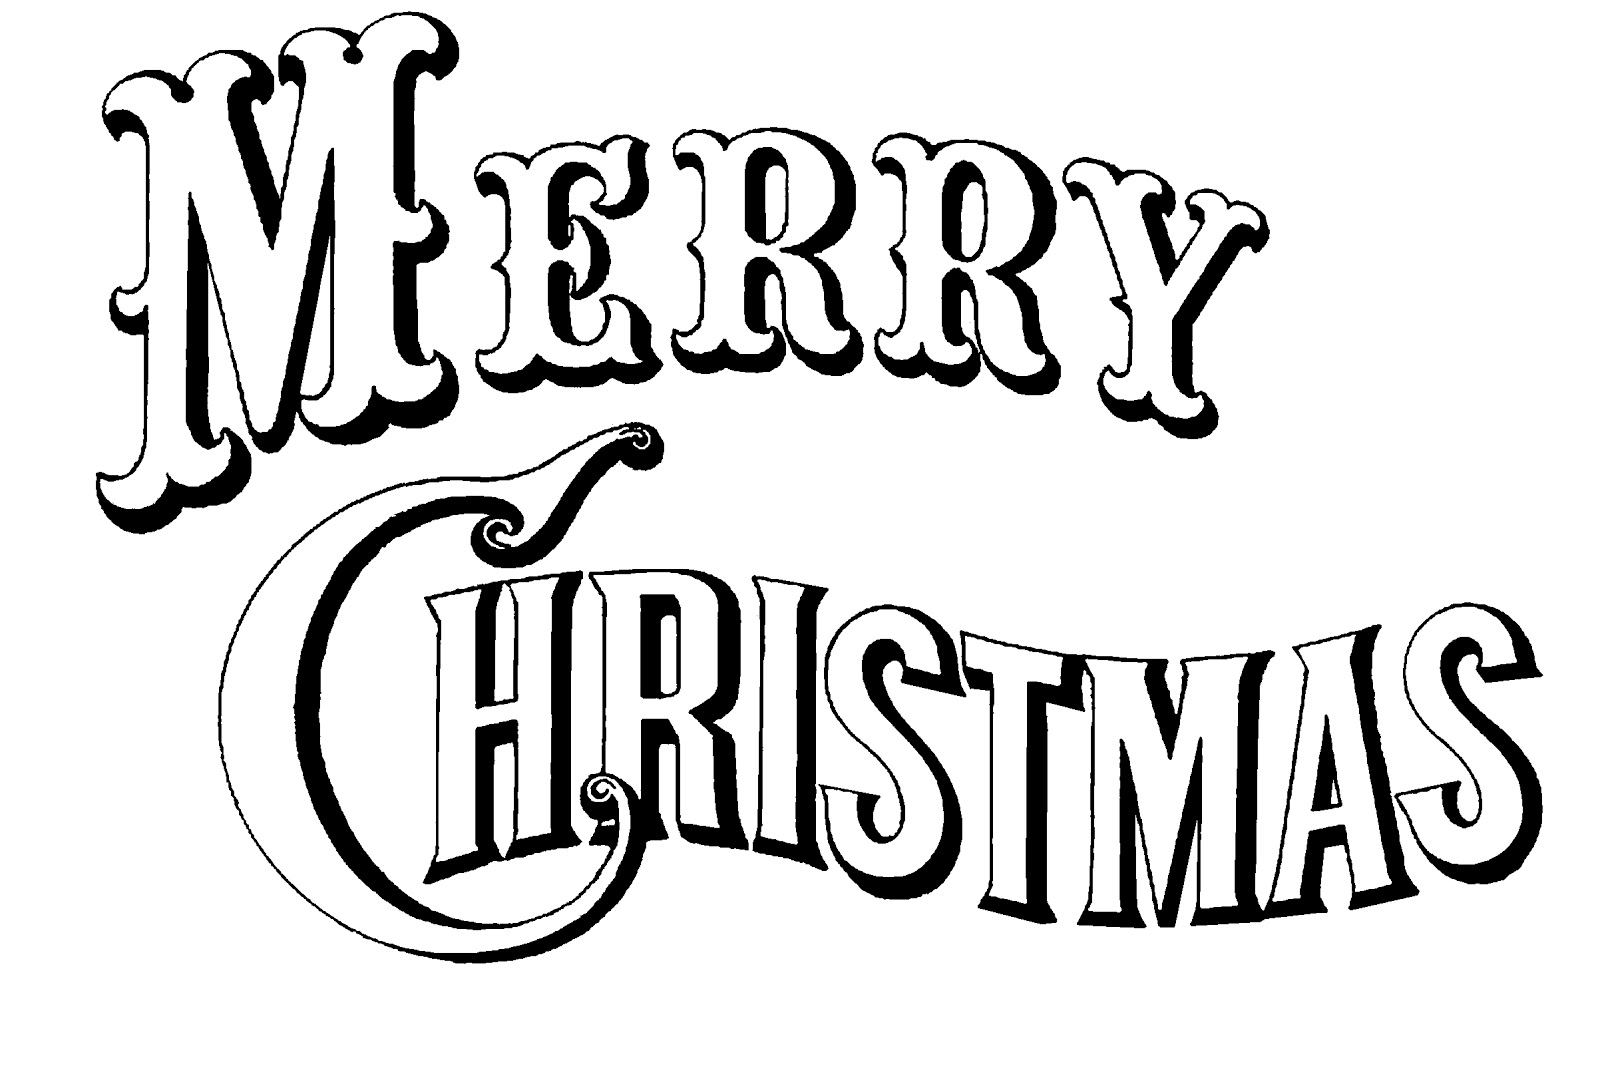 Clip Art Merry Christmas Clip Art Words merry christmas clip art words clipart panda free images art